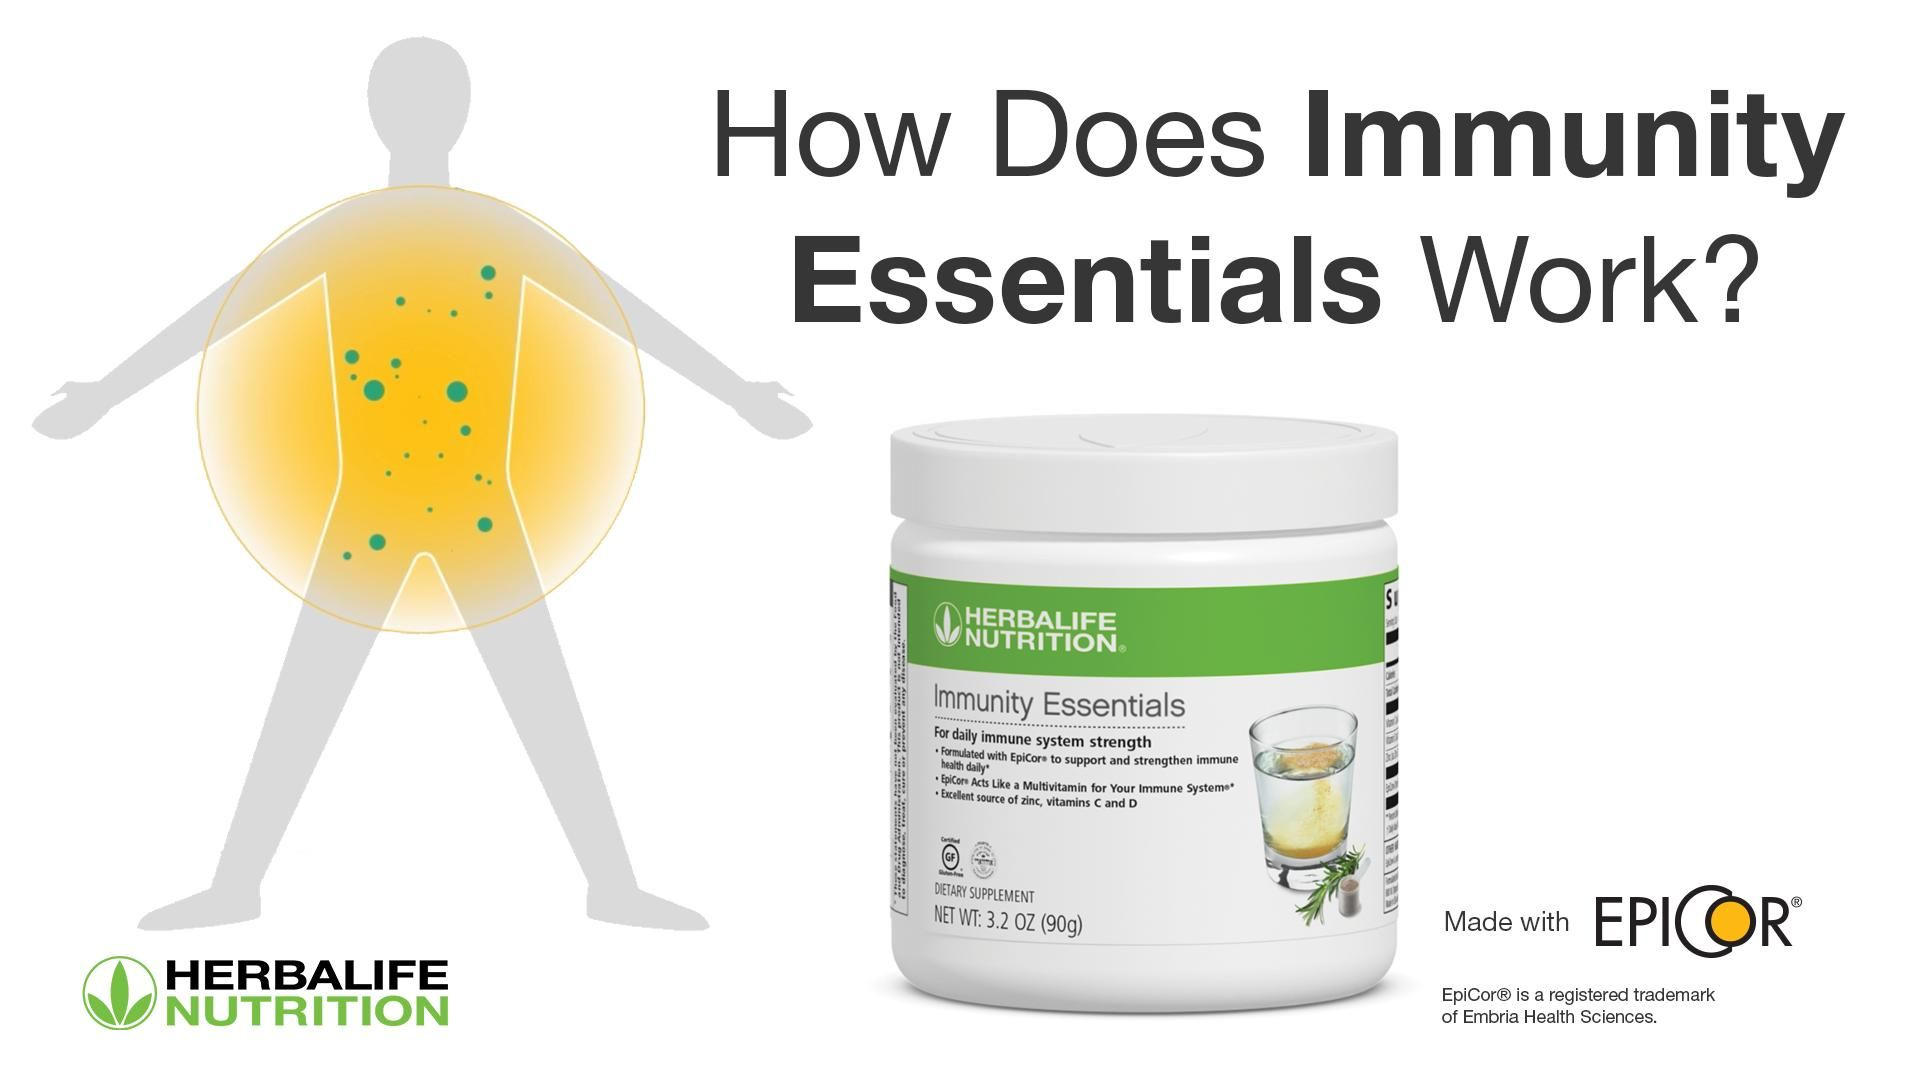 How Does Immunity Essentials Work?